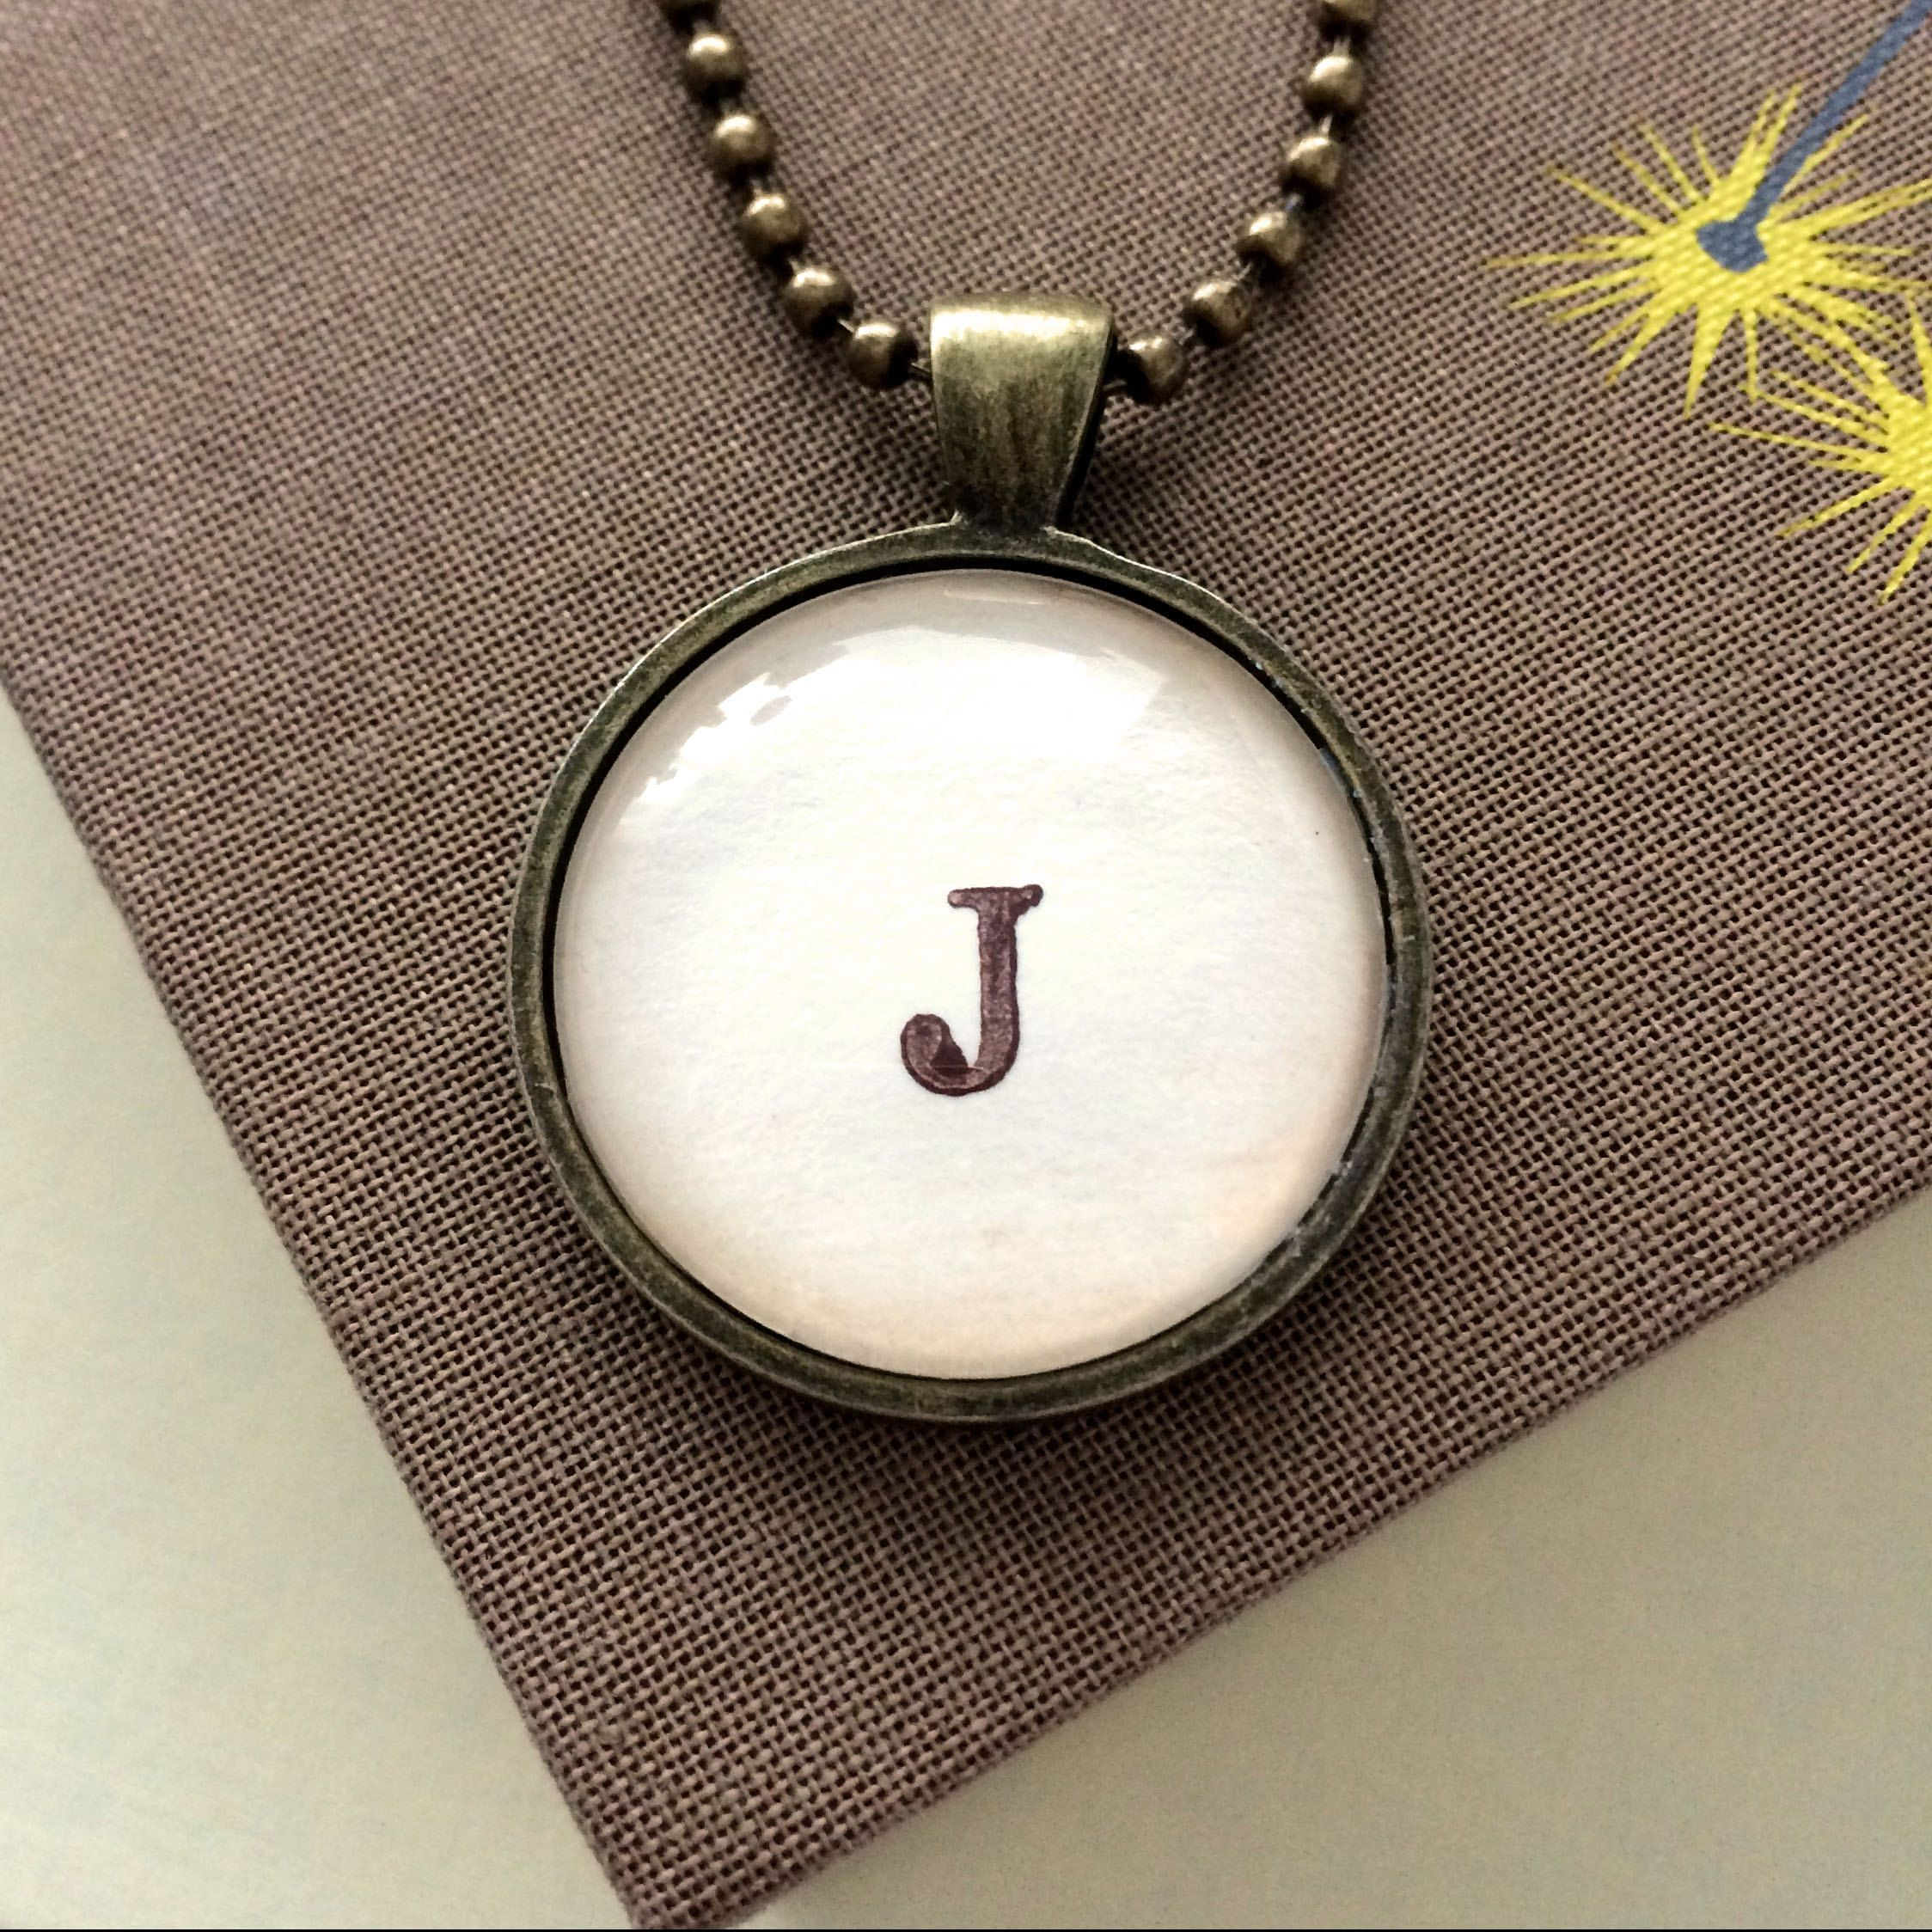 via letter mother necklace frances s sterling by custom pendant etsy celebrity silver personalized initial m jewelry inspired pin